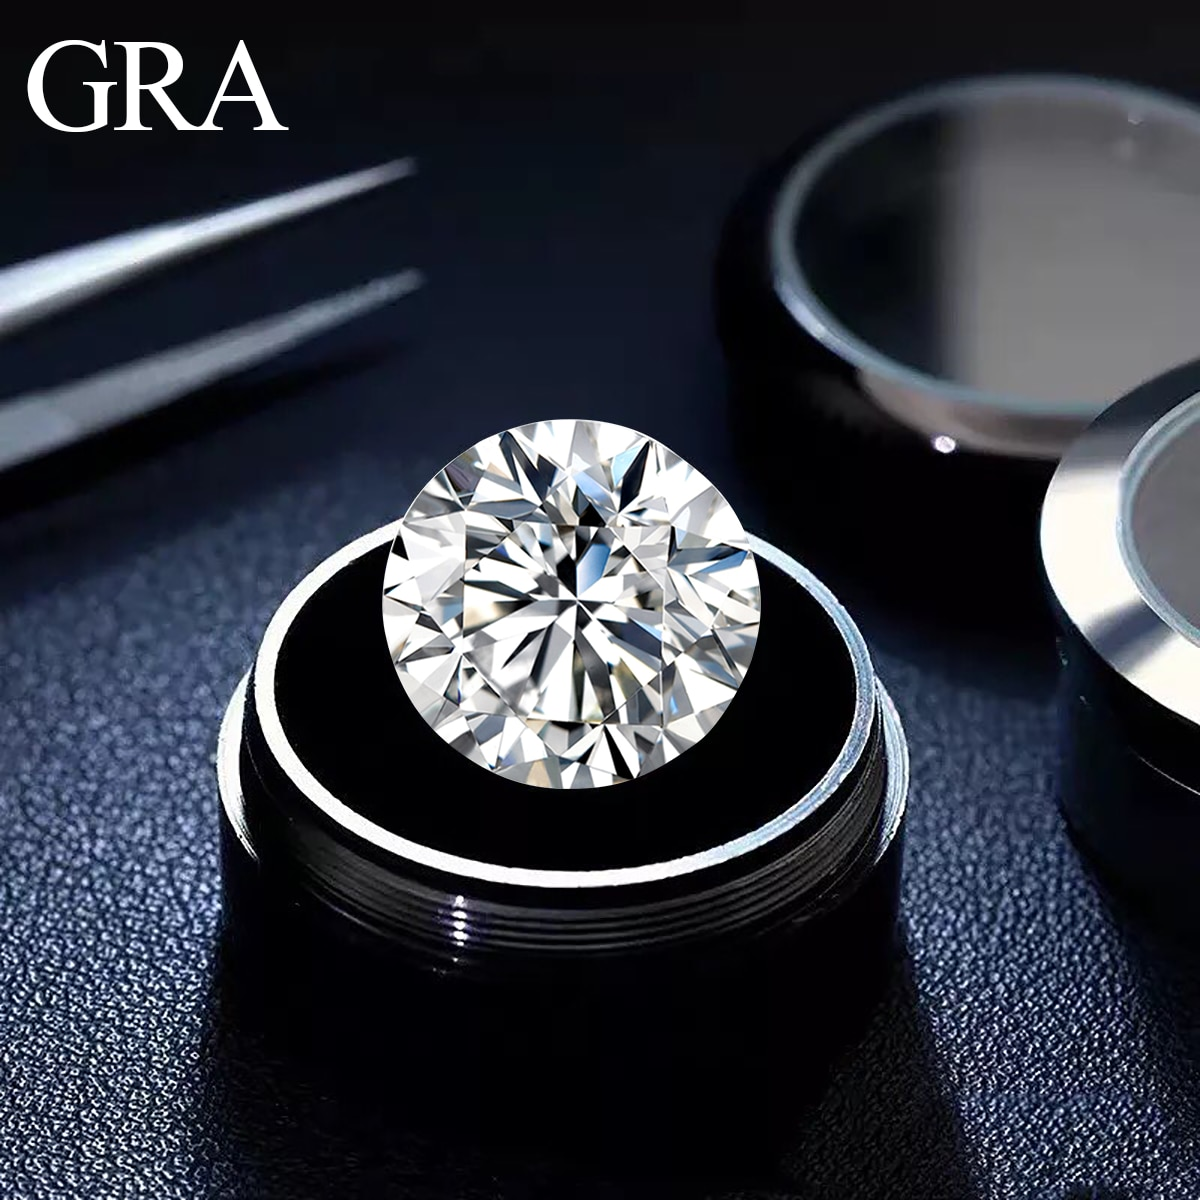 Loose Moissanite Stones 3mm to 12mm IJ color Round Brilliant Cut Loose beads Fine Jewelry For Ring Earrings Material Diamond New